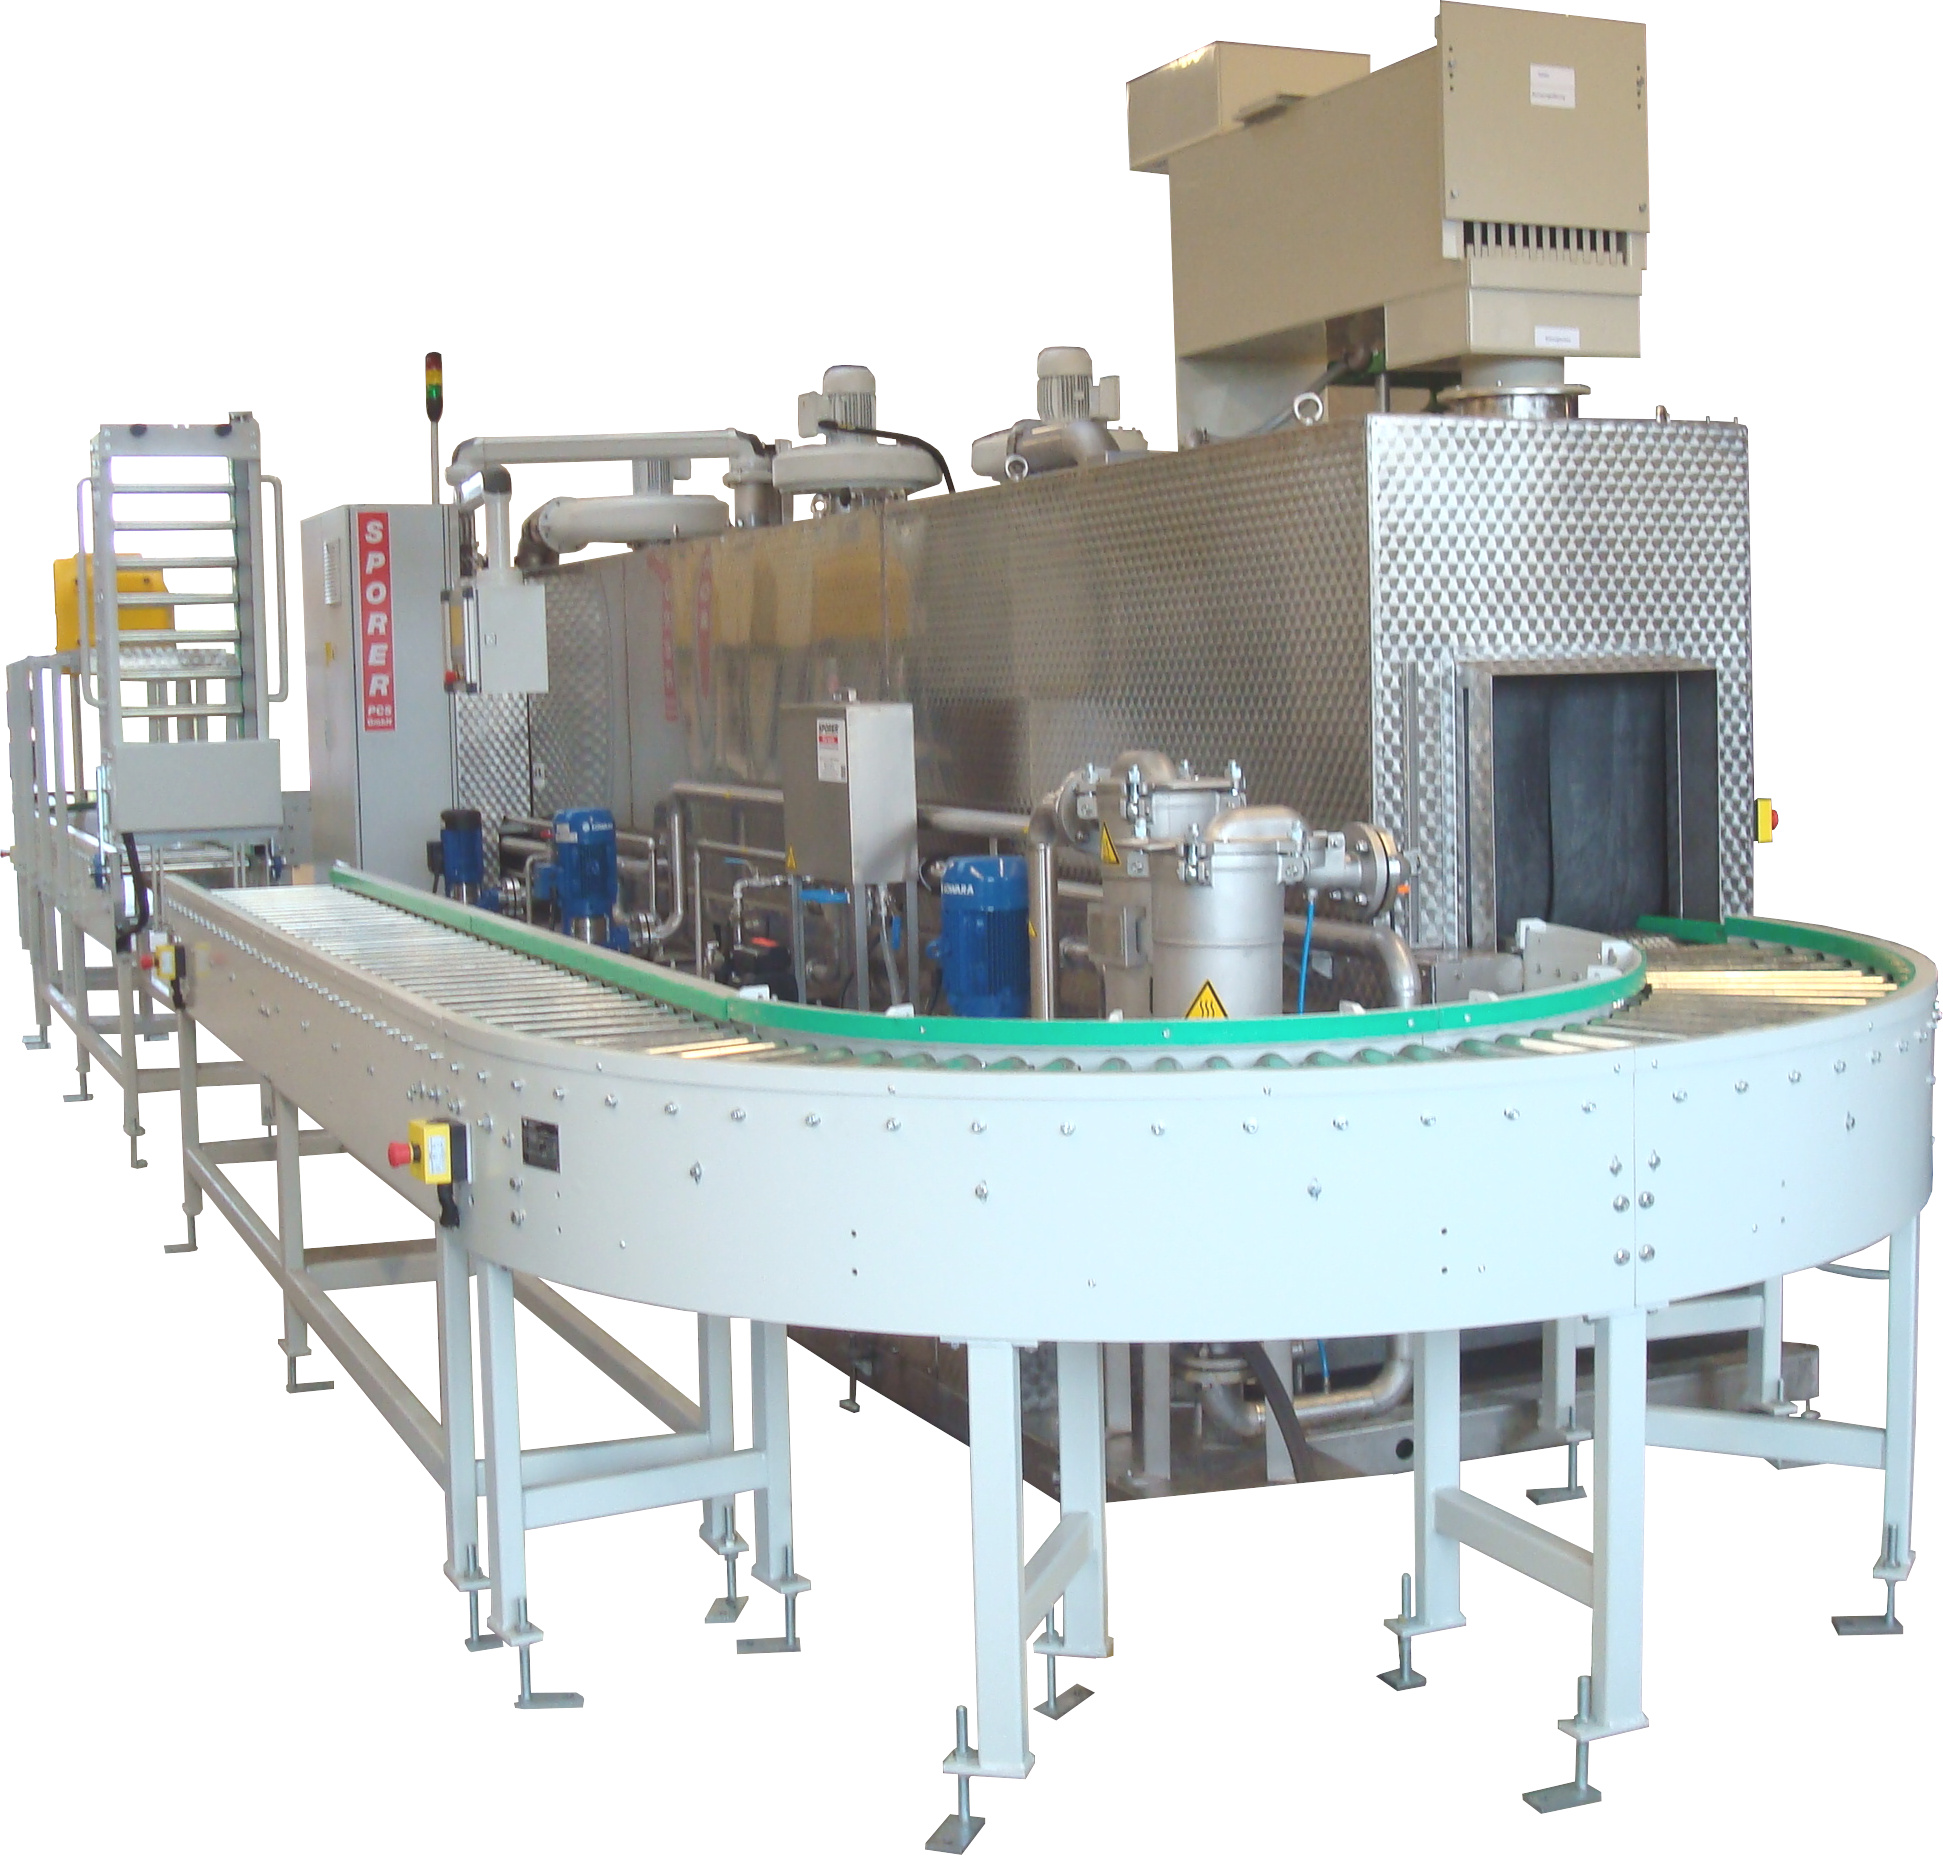 Continuous cleaning system cleaning / rinsing / rinsing / drying with circulating conveyor belt